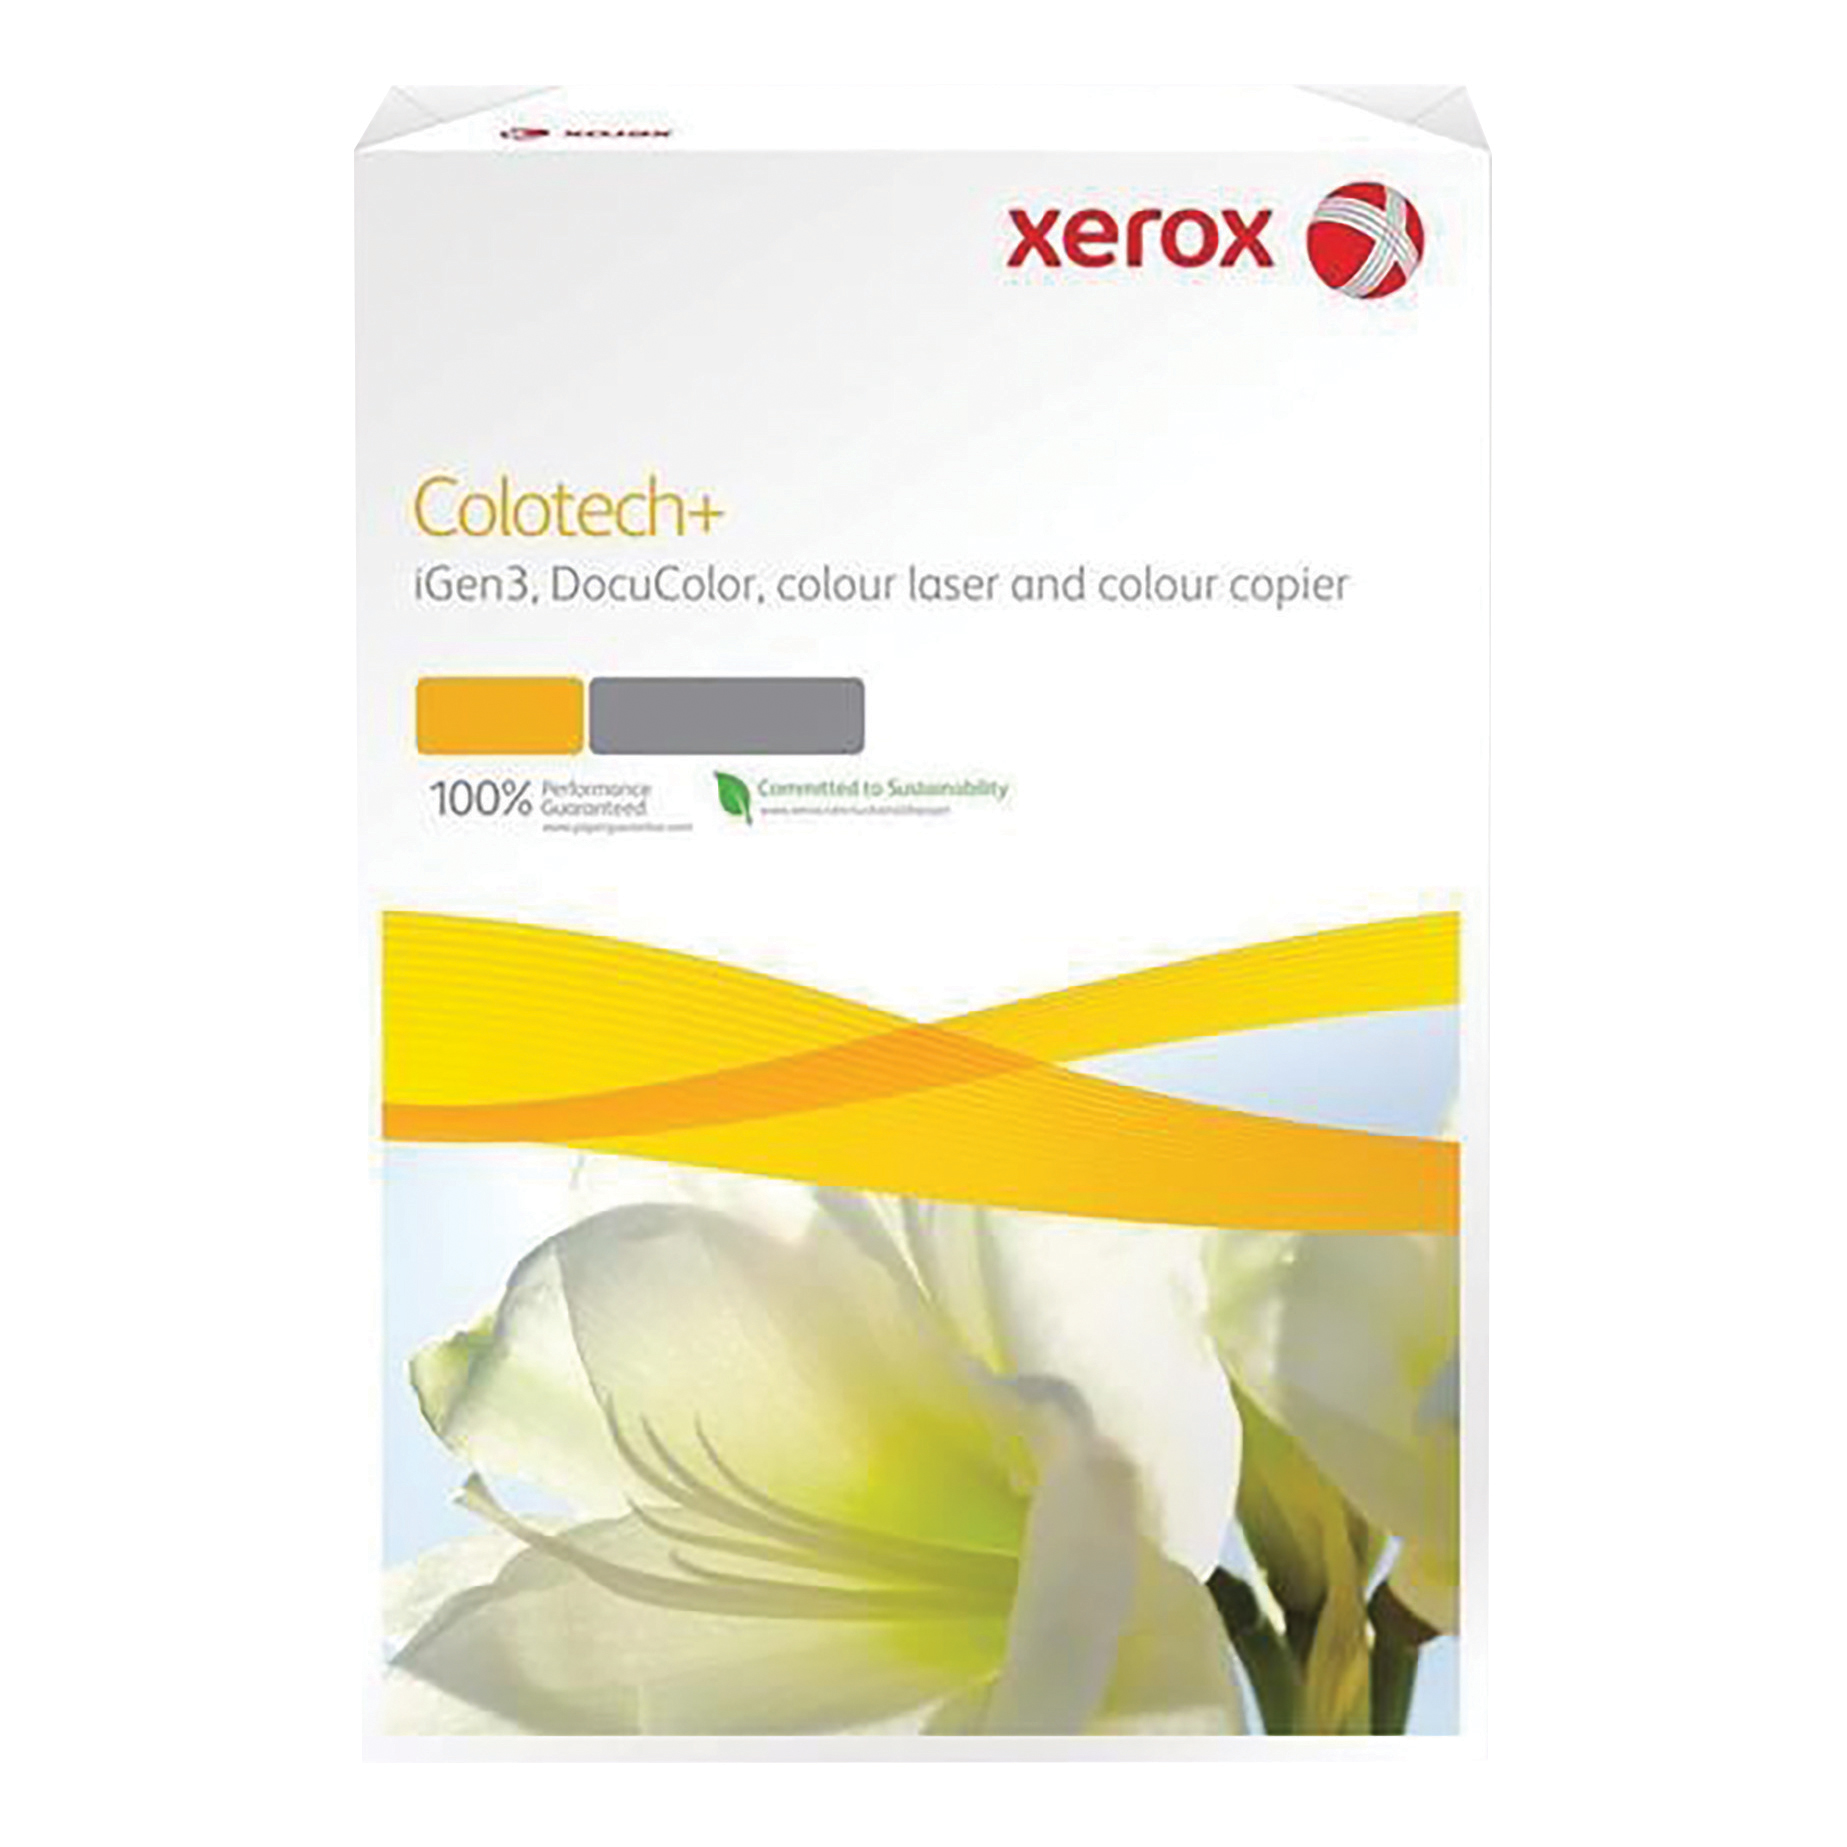 Xerox FSC Coltech+ Digital Colour Paper Prem Ream-Wrapped ColorLok 120gsm A4 White Ref 64463 [500 Sheets]